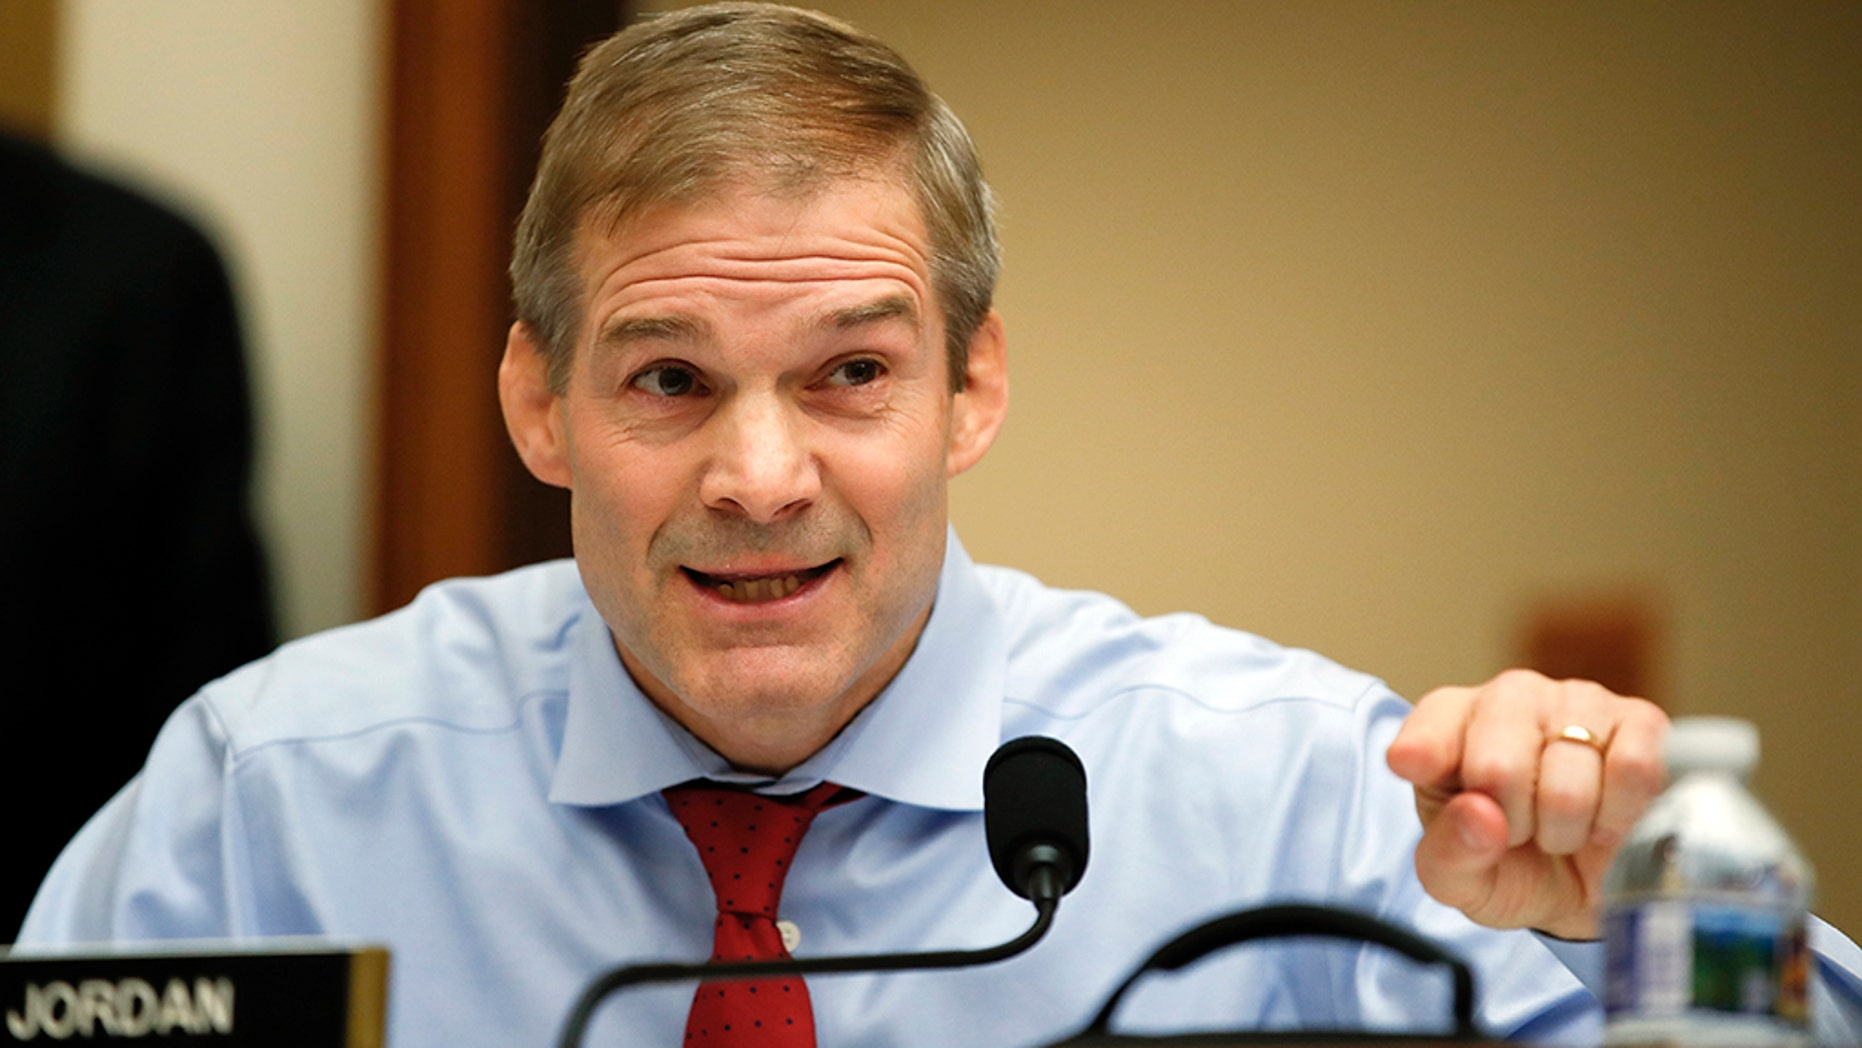 House Judiciary Committee member Rep. Jim Jordan, R-Ohio, during a conference on Capitol Hill in Washington, Dec. 7, 2017. (Associated Press)